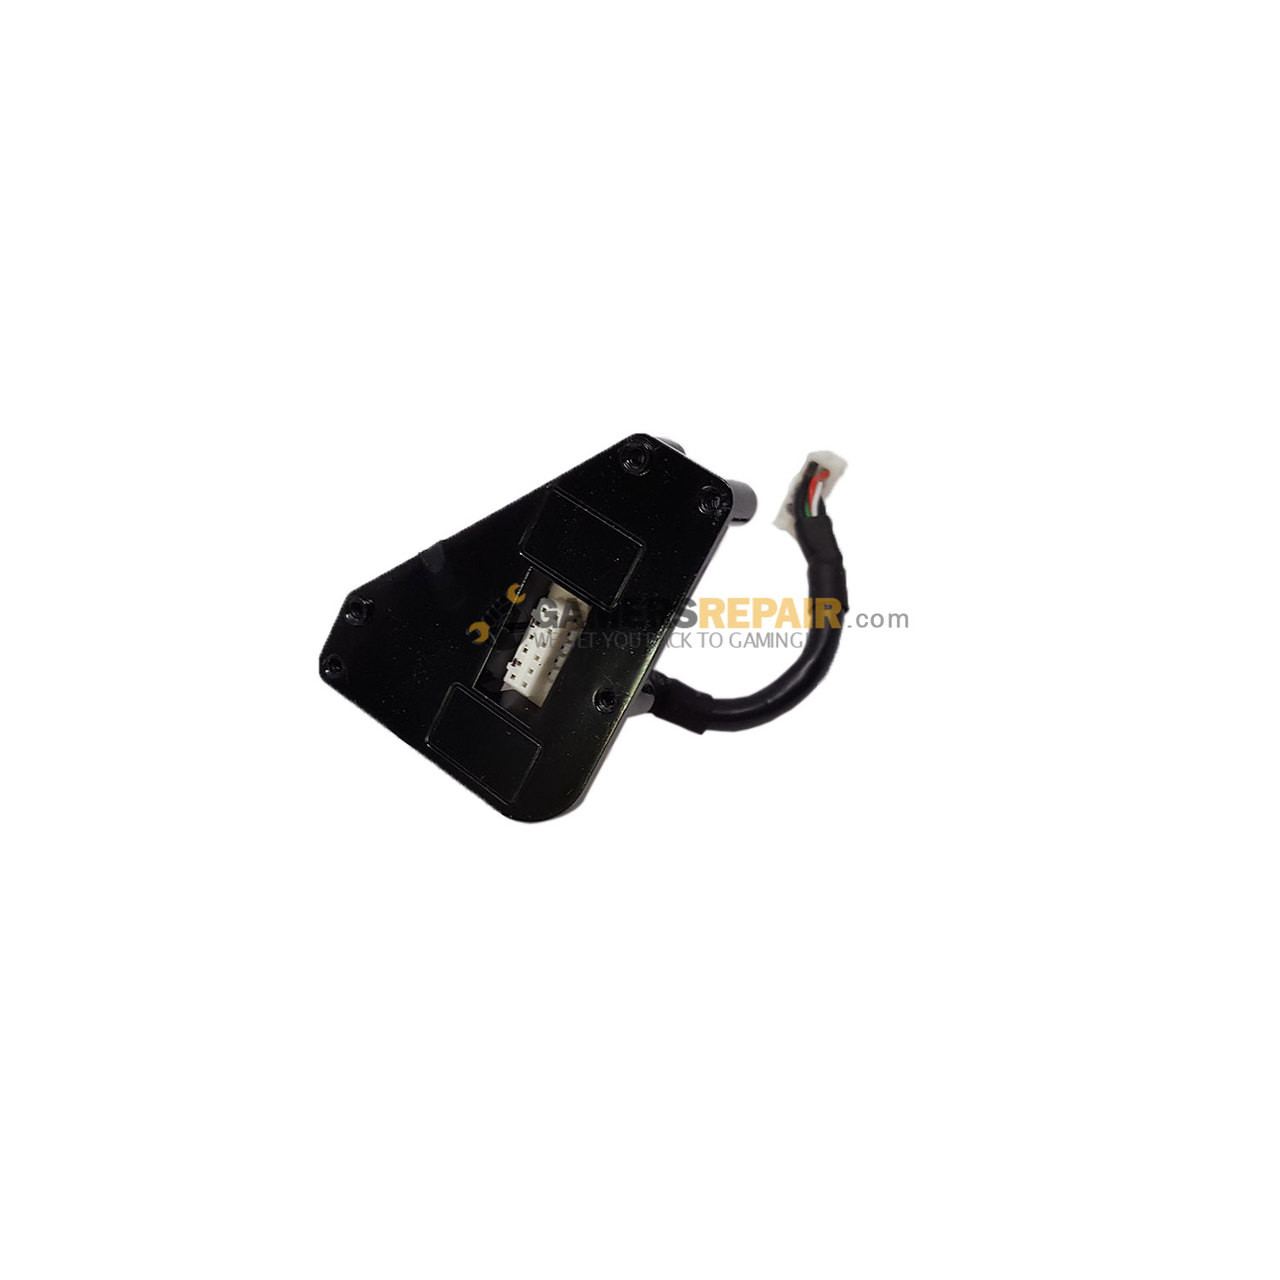 OEM Wifi Bluetooth Module Connector Cable for Xbox ONE